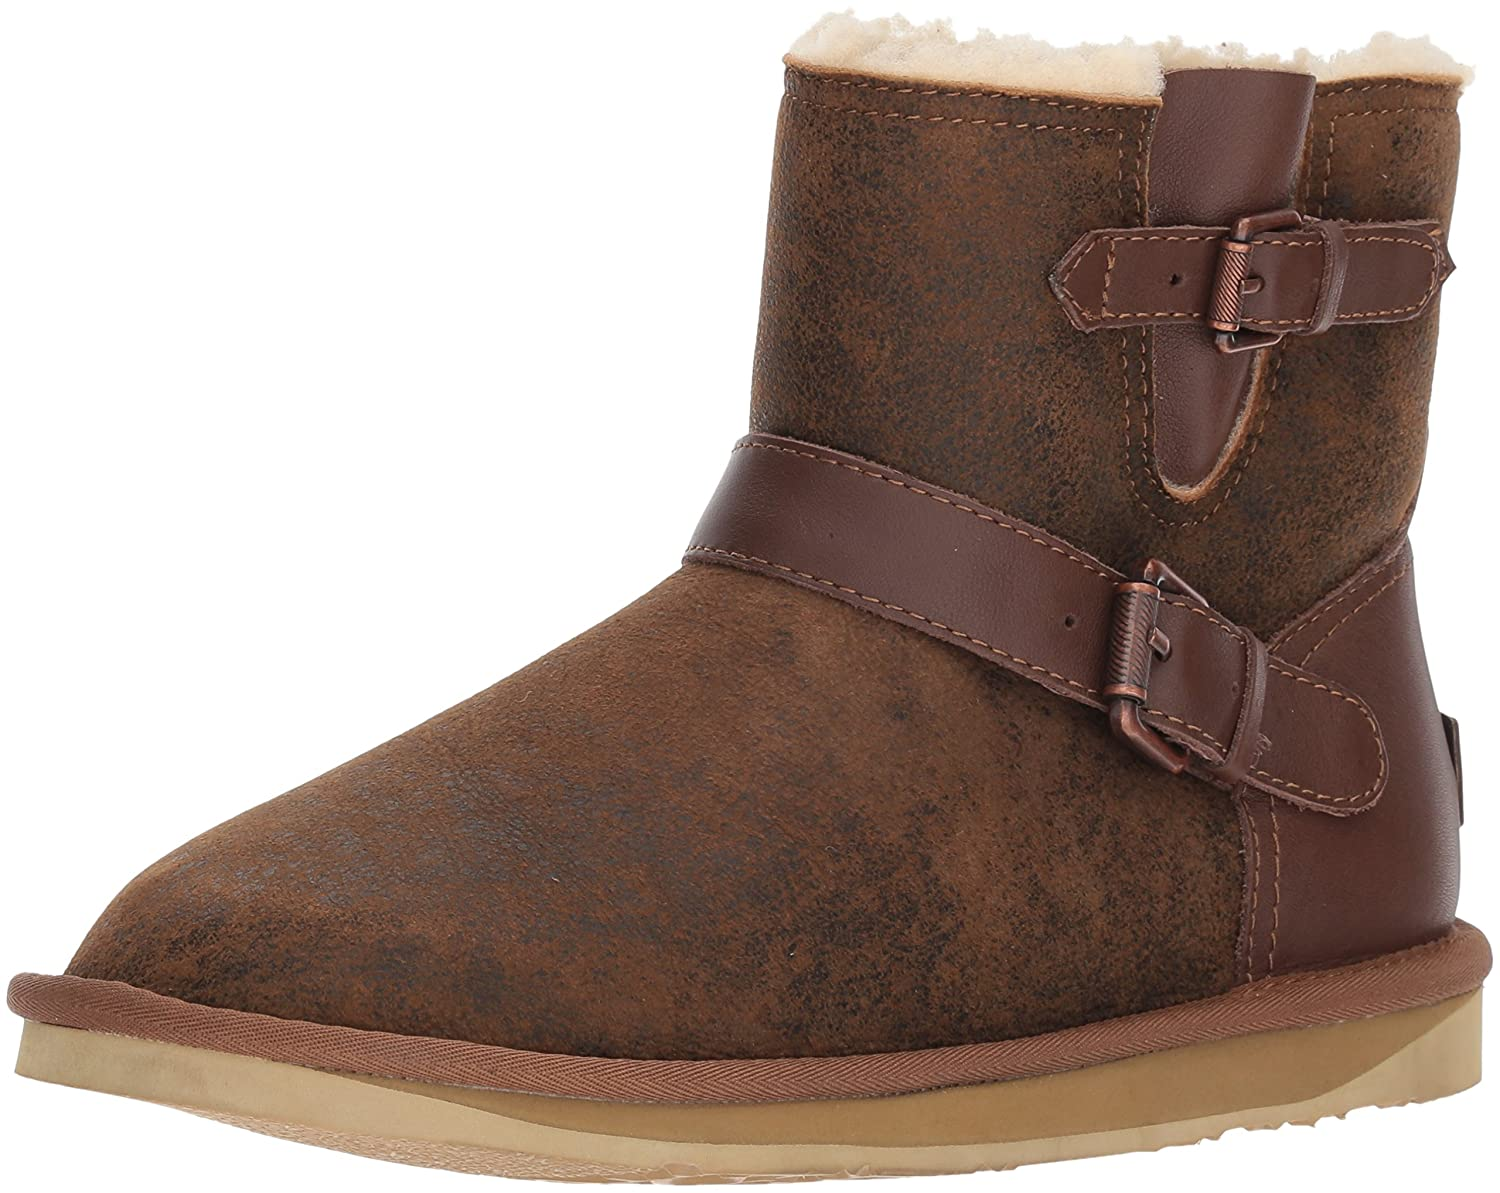 Luxe Co....... Womens Machina X Short Sheep Skin Round Toe Ankle Cold Weather Boots B075FXYC9L 7 Standard US Width US|Aviator